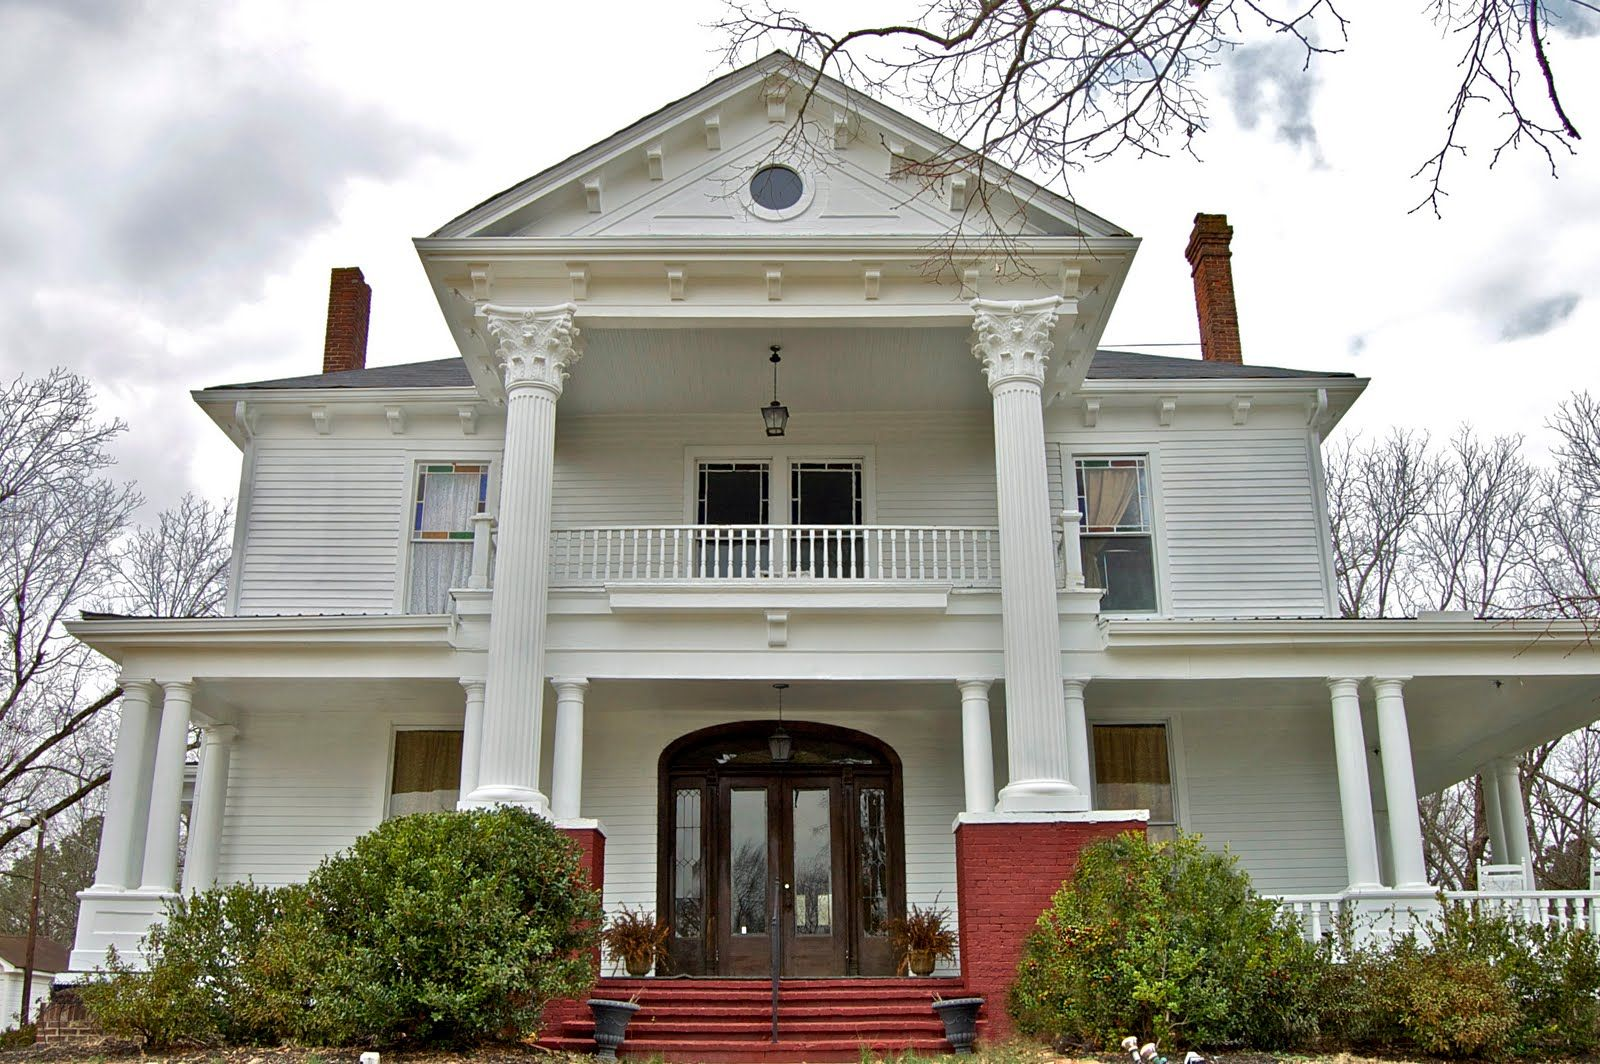 Victorian homes for sale in mississippi - Thistledome In Byhalia Ms Built 1840